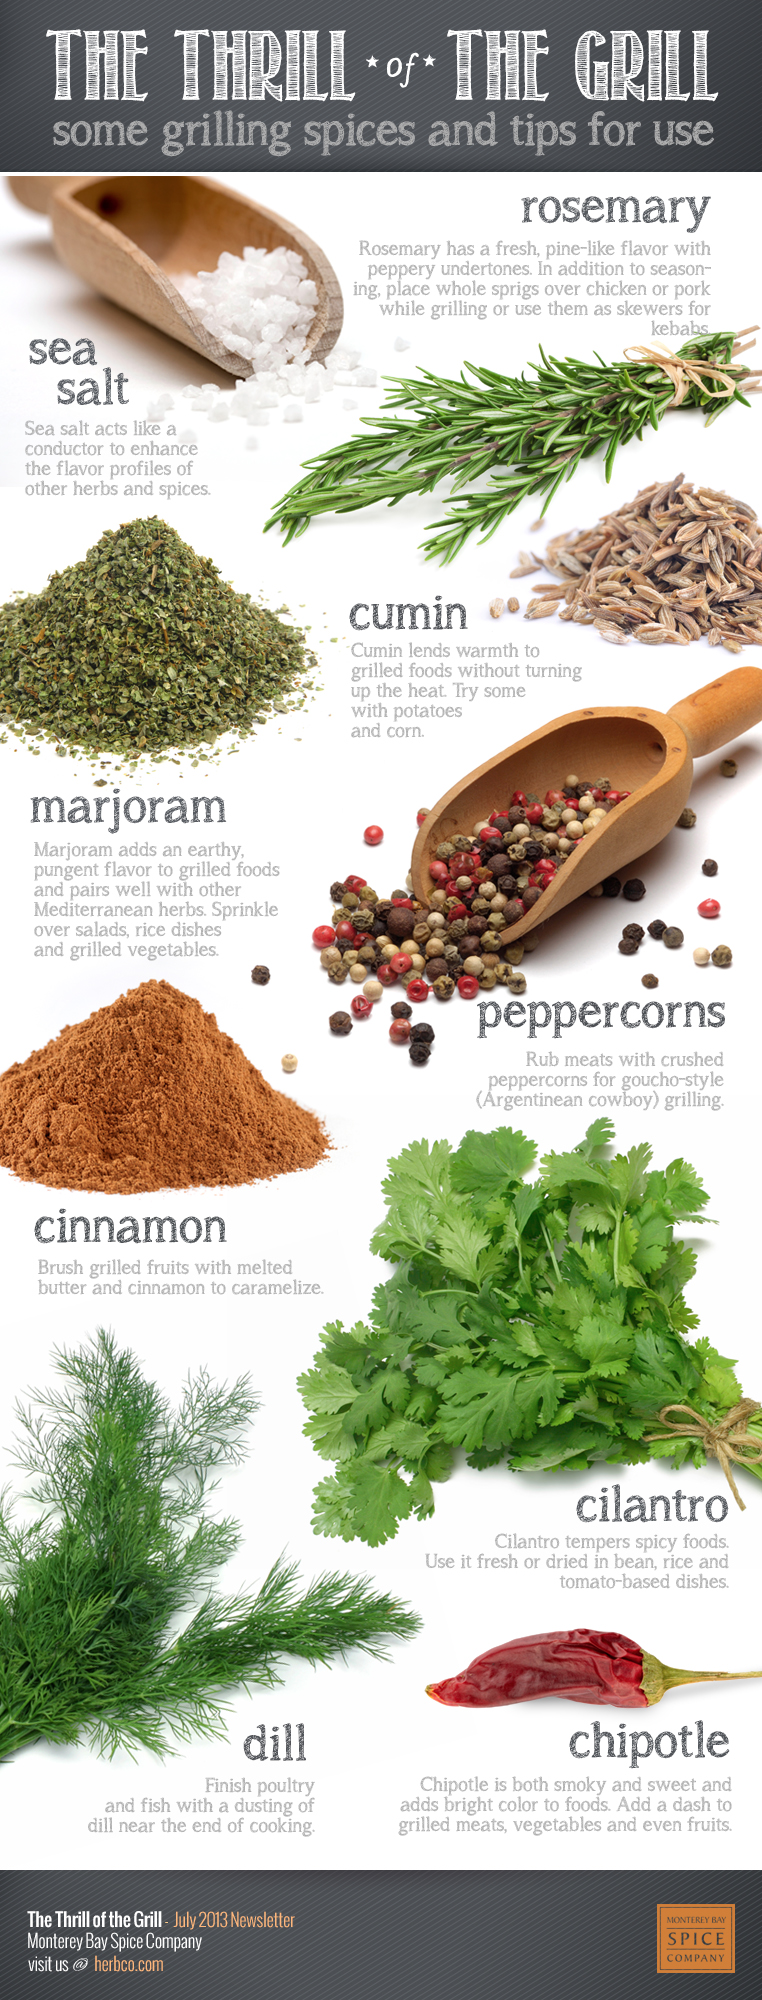 [ Info: Spices For Grilling ] Includes notes on: rosemary, cumin, marjoram, peppercorns, cinnamon, sea salt, cilantro, chipotle, and dill. ~ from Monterey Bay Spice Co